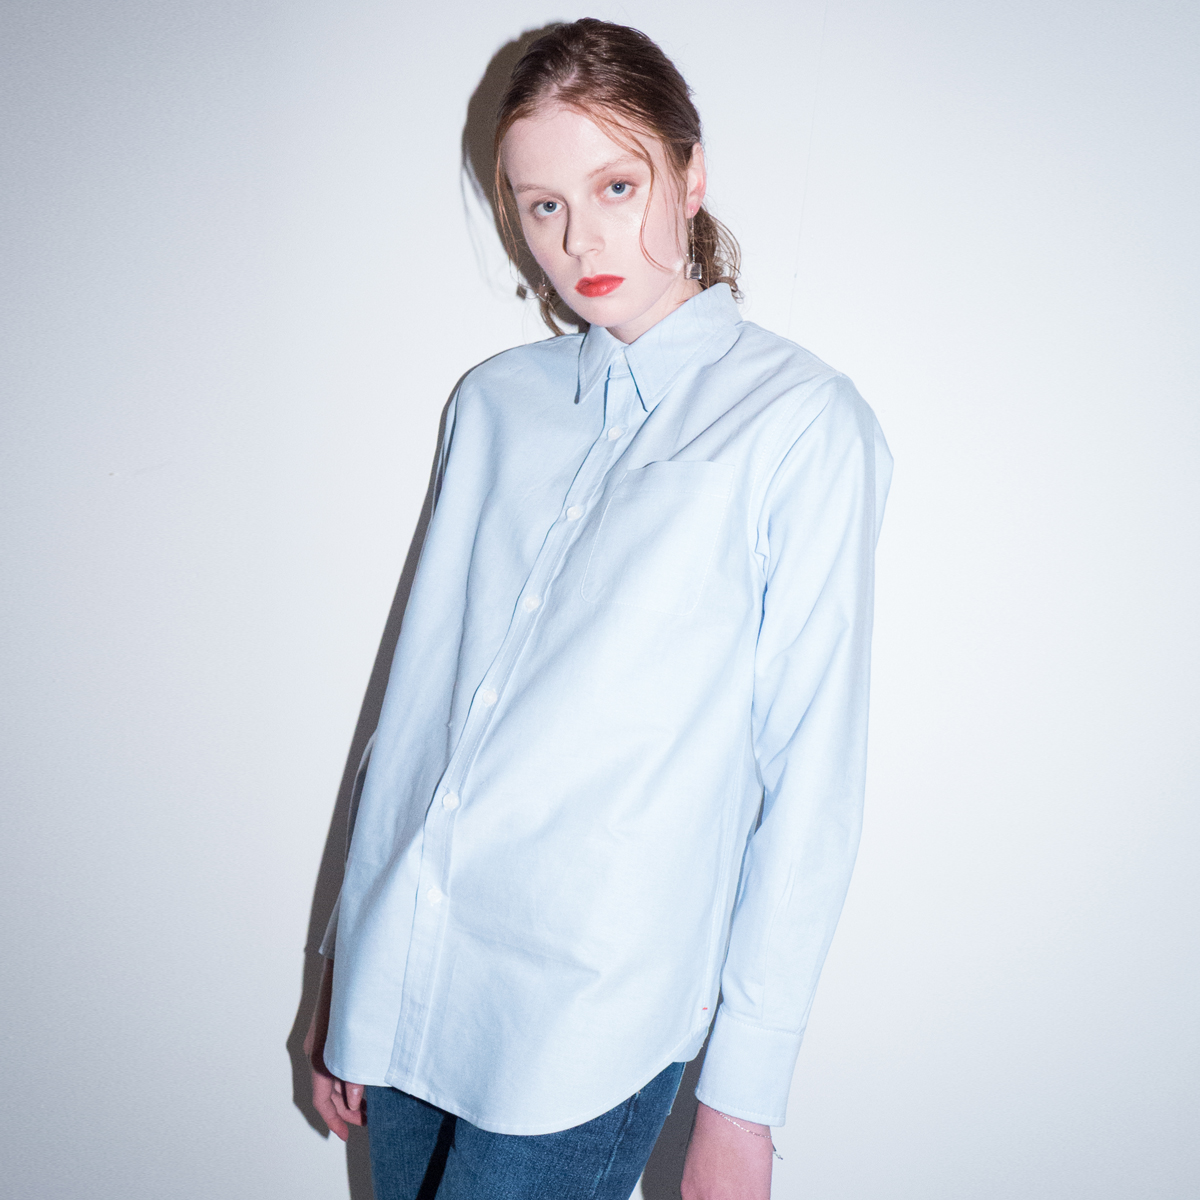 L CLASSIC POCKET SHIRT_BL